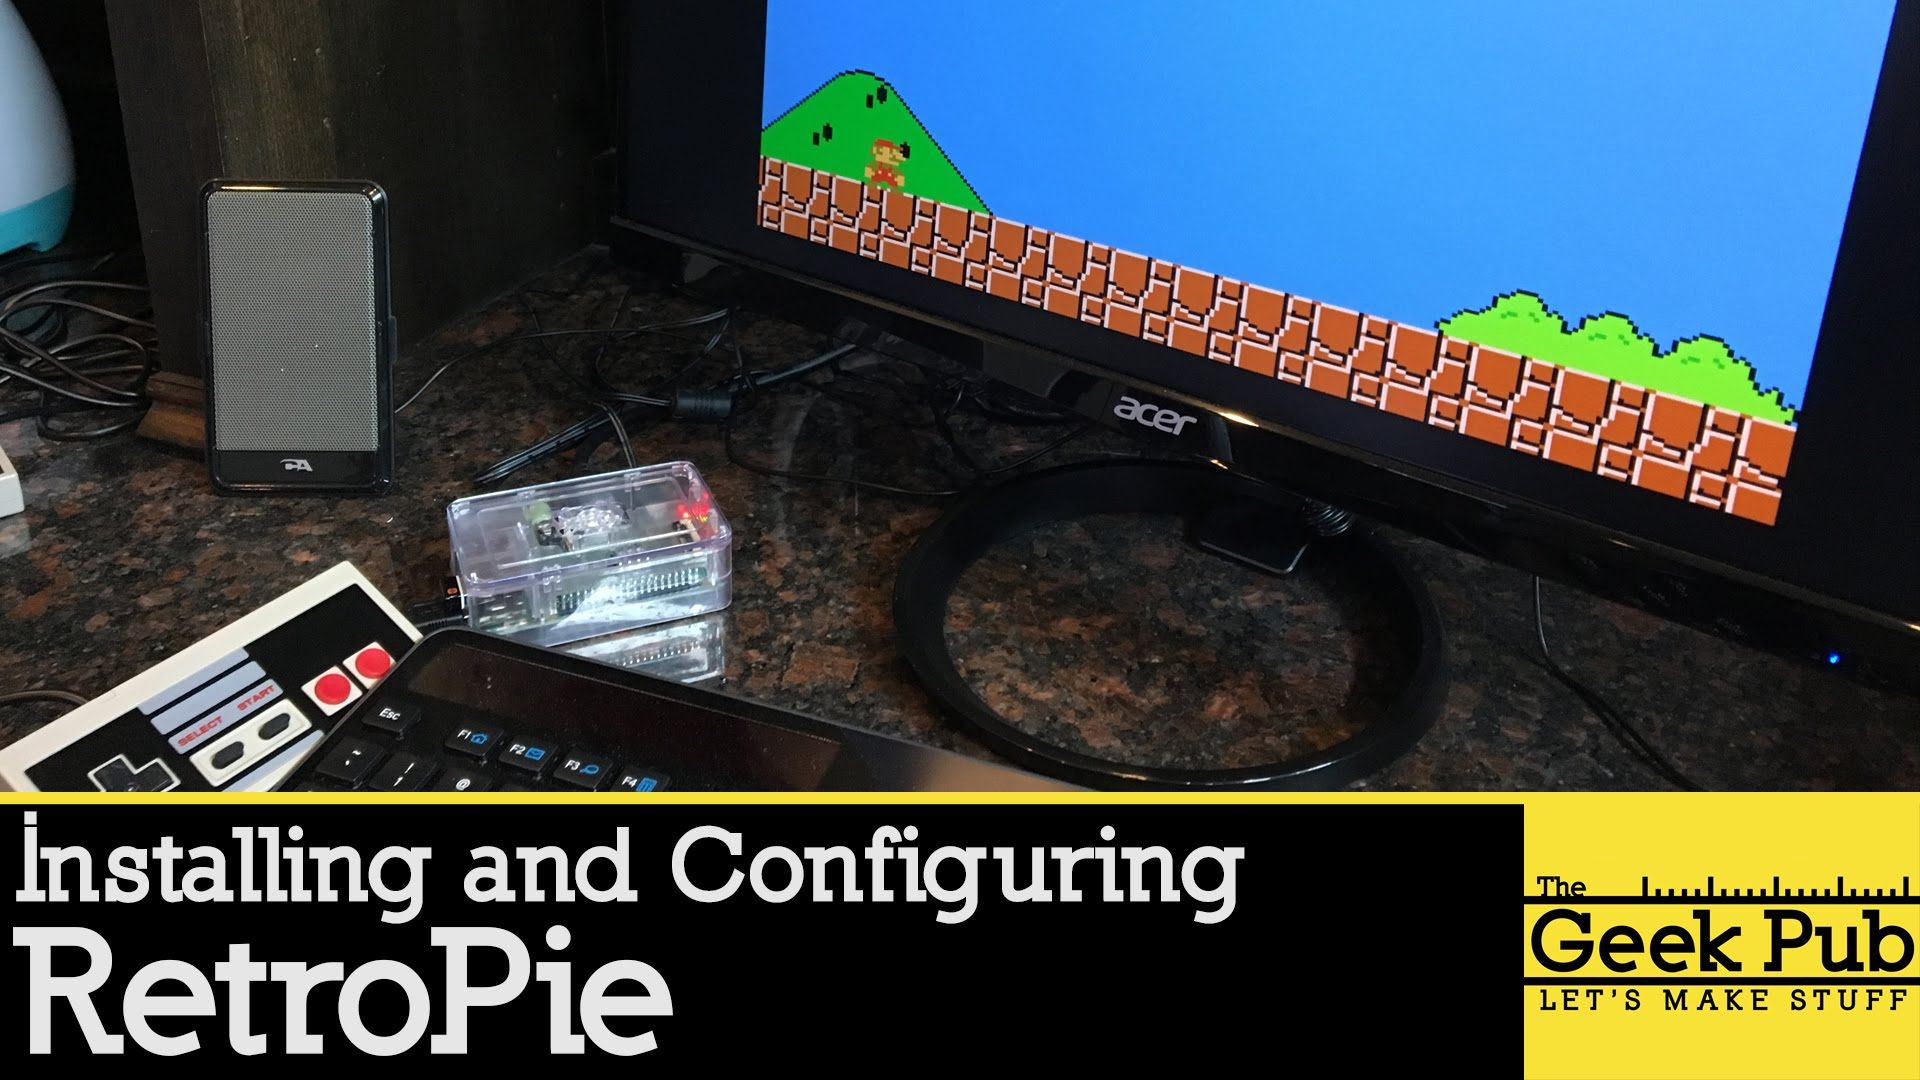 Setting up Retropie on a Raspberry Pi 3 for an Arcade Cabinet